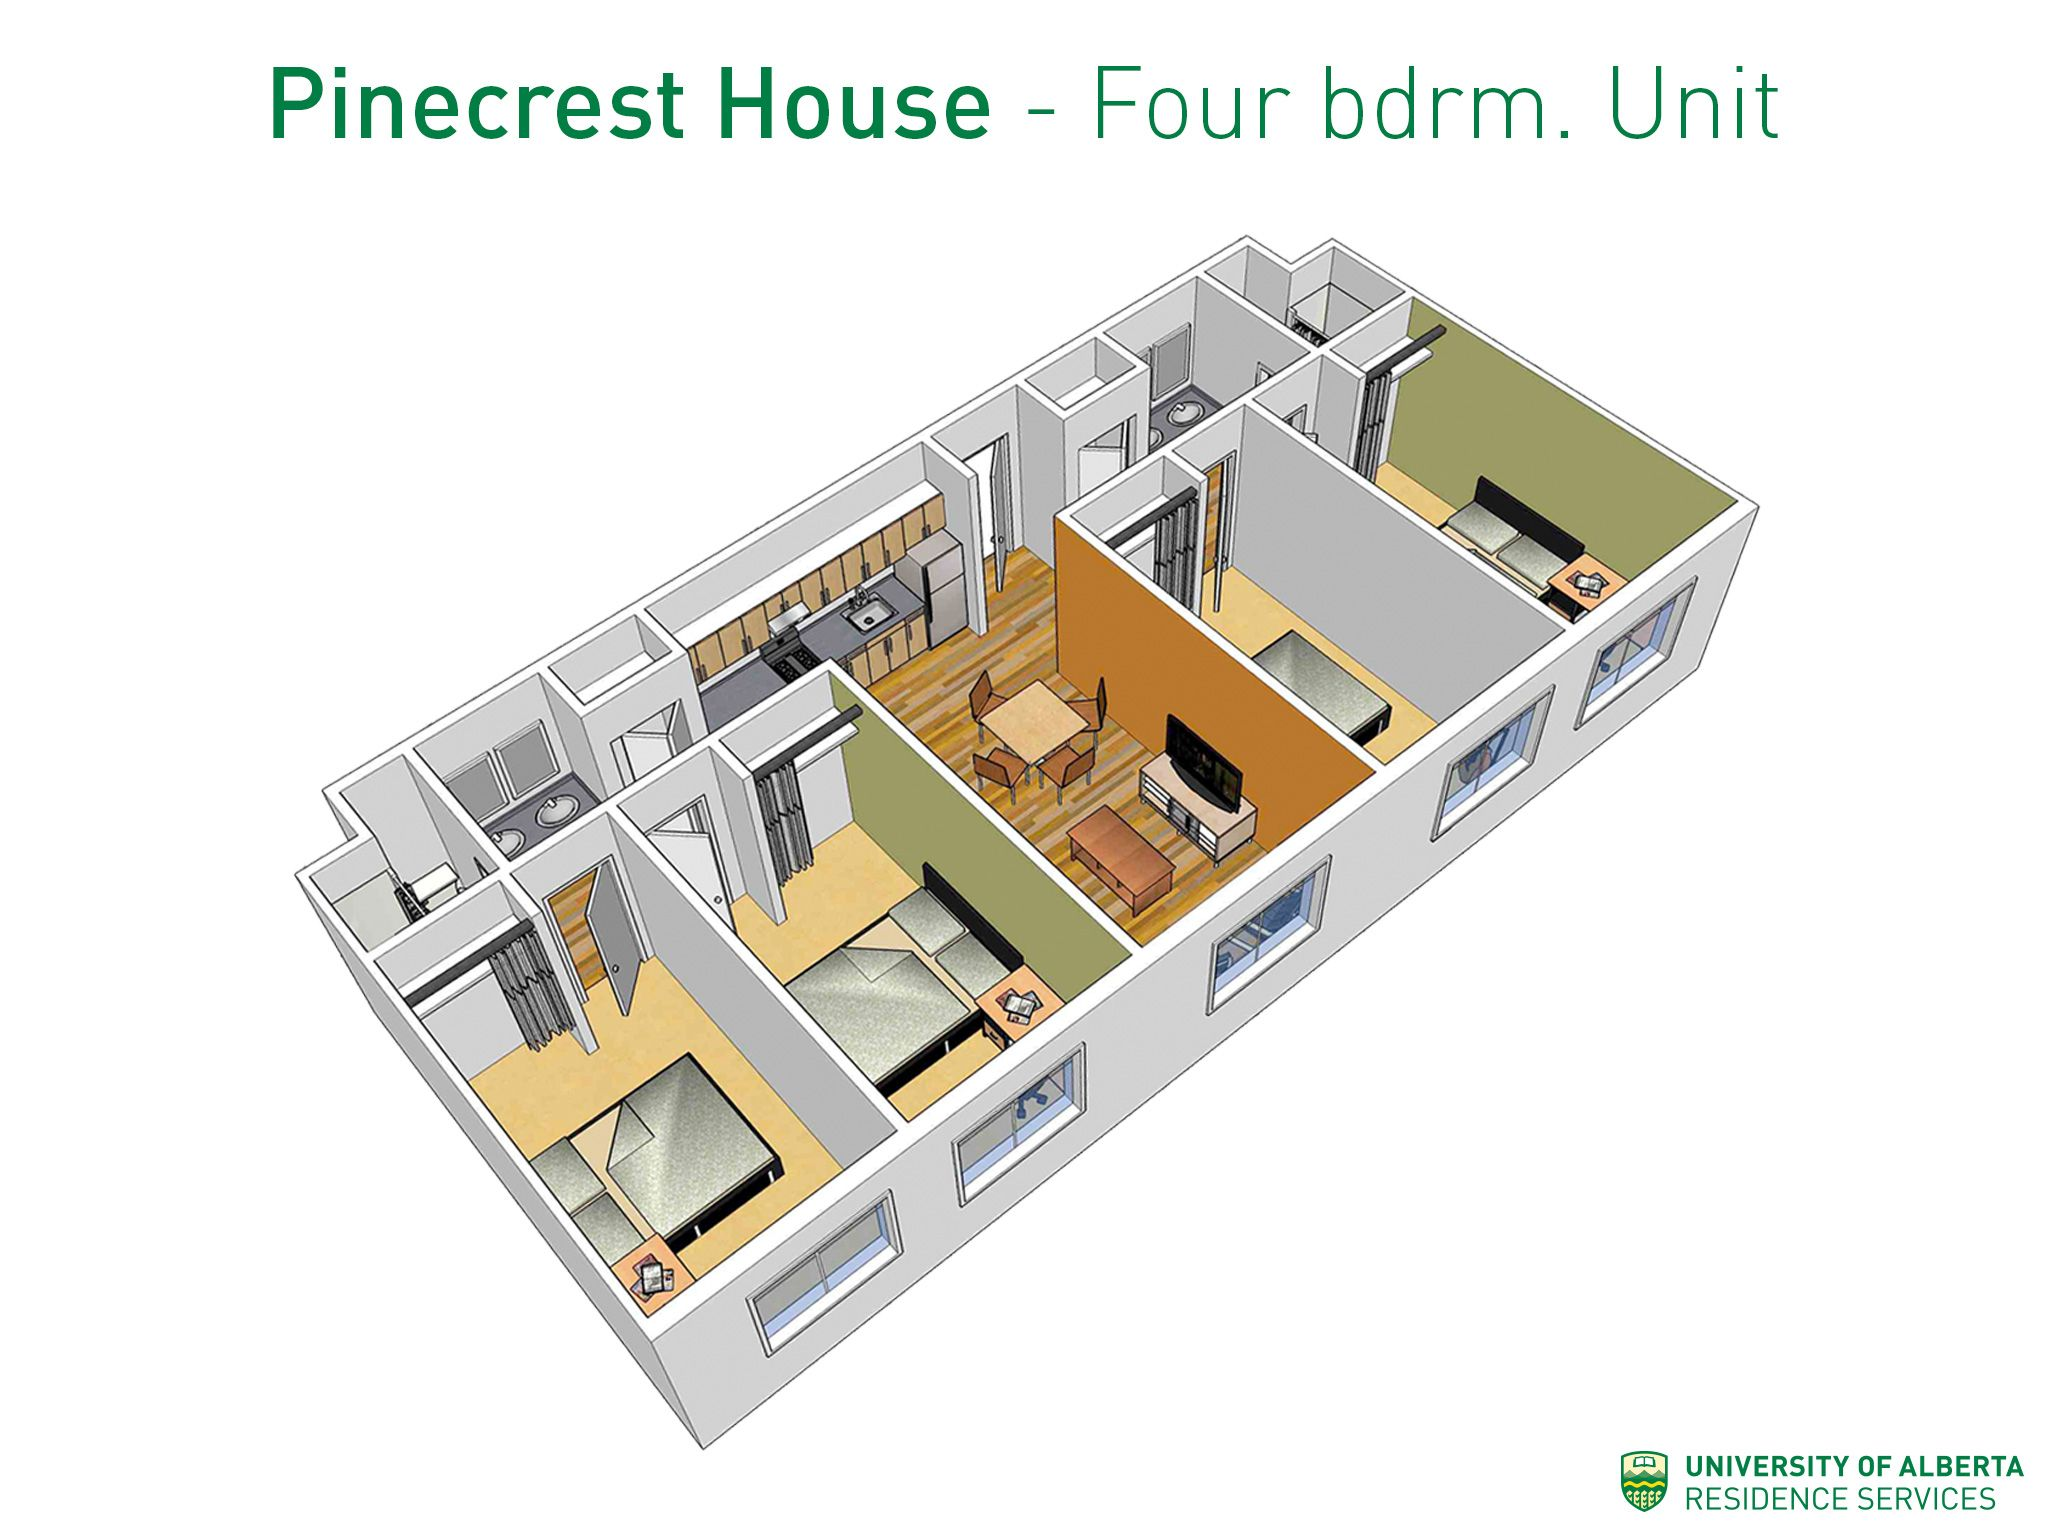 Four Bedroom Unit Layout For Pinecrest House At UAlberta! #ualberta Part 38